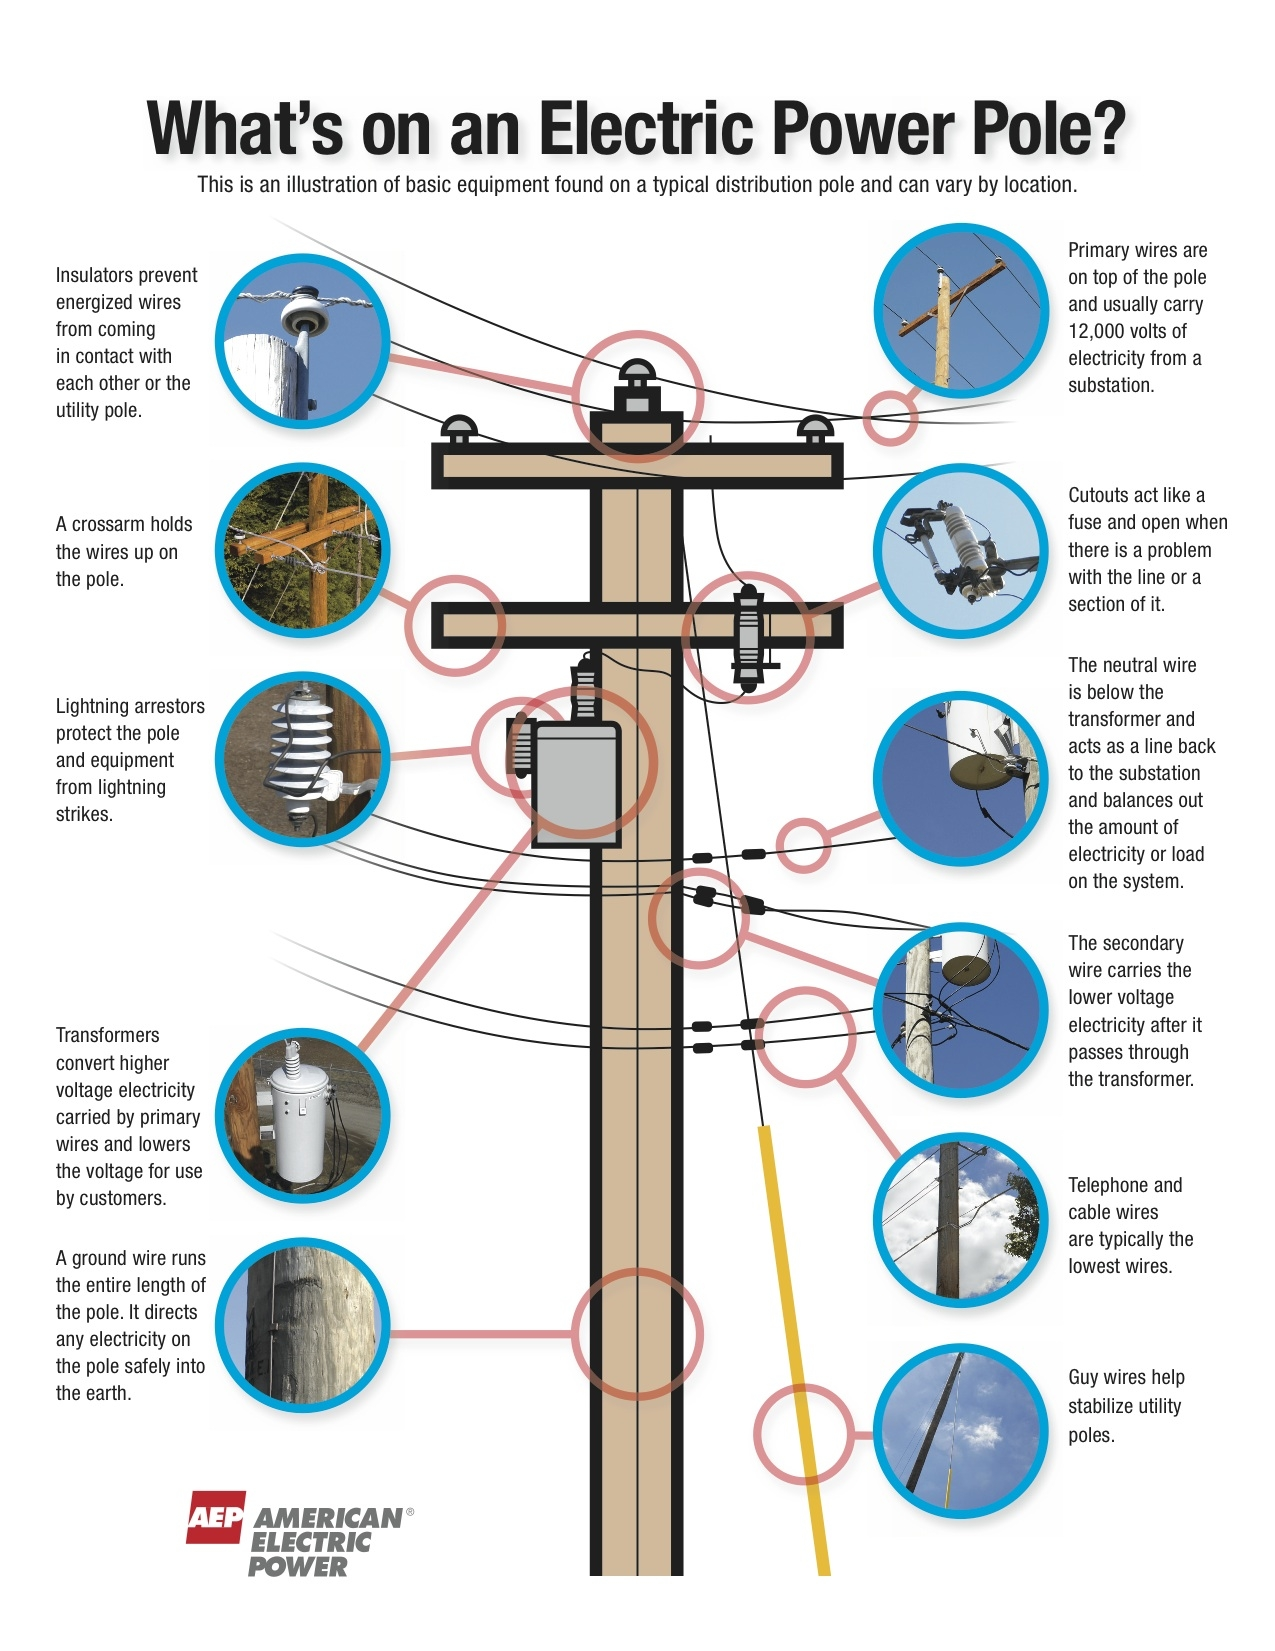 1994 ford f 150 xl wiring diagram for a truck power pole xl wiring diagram what's on a power pole? | 3bl media